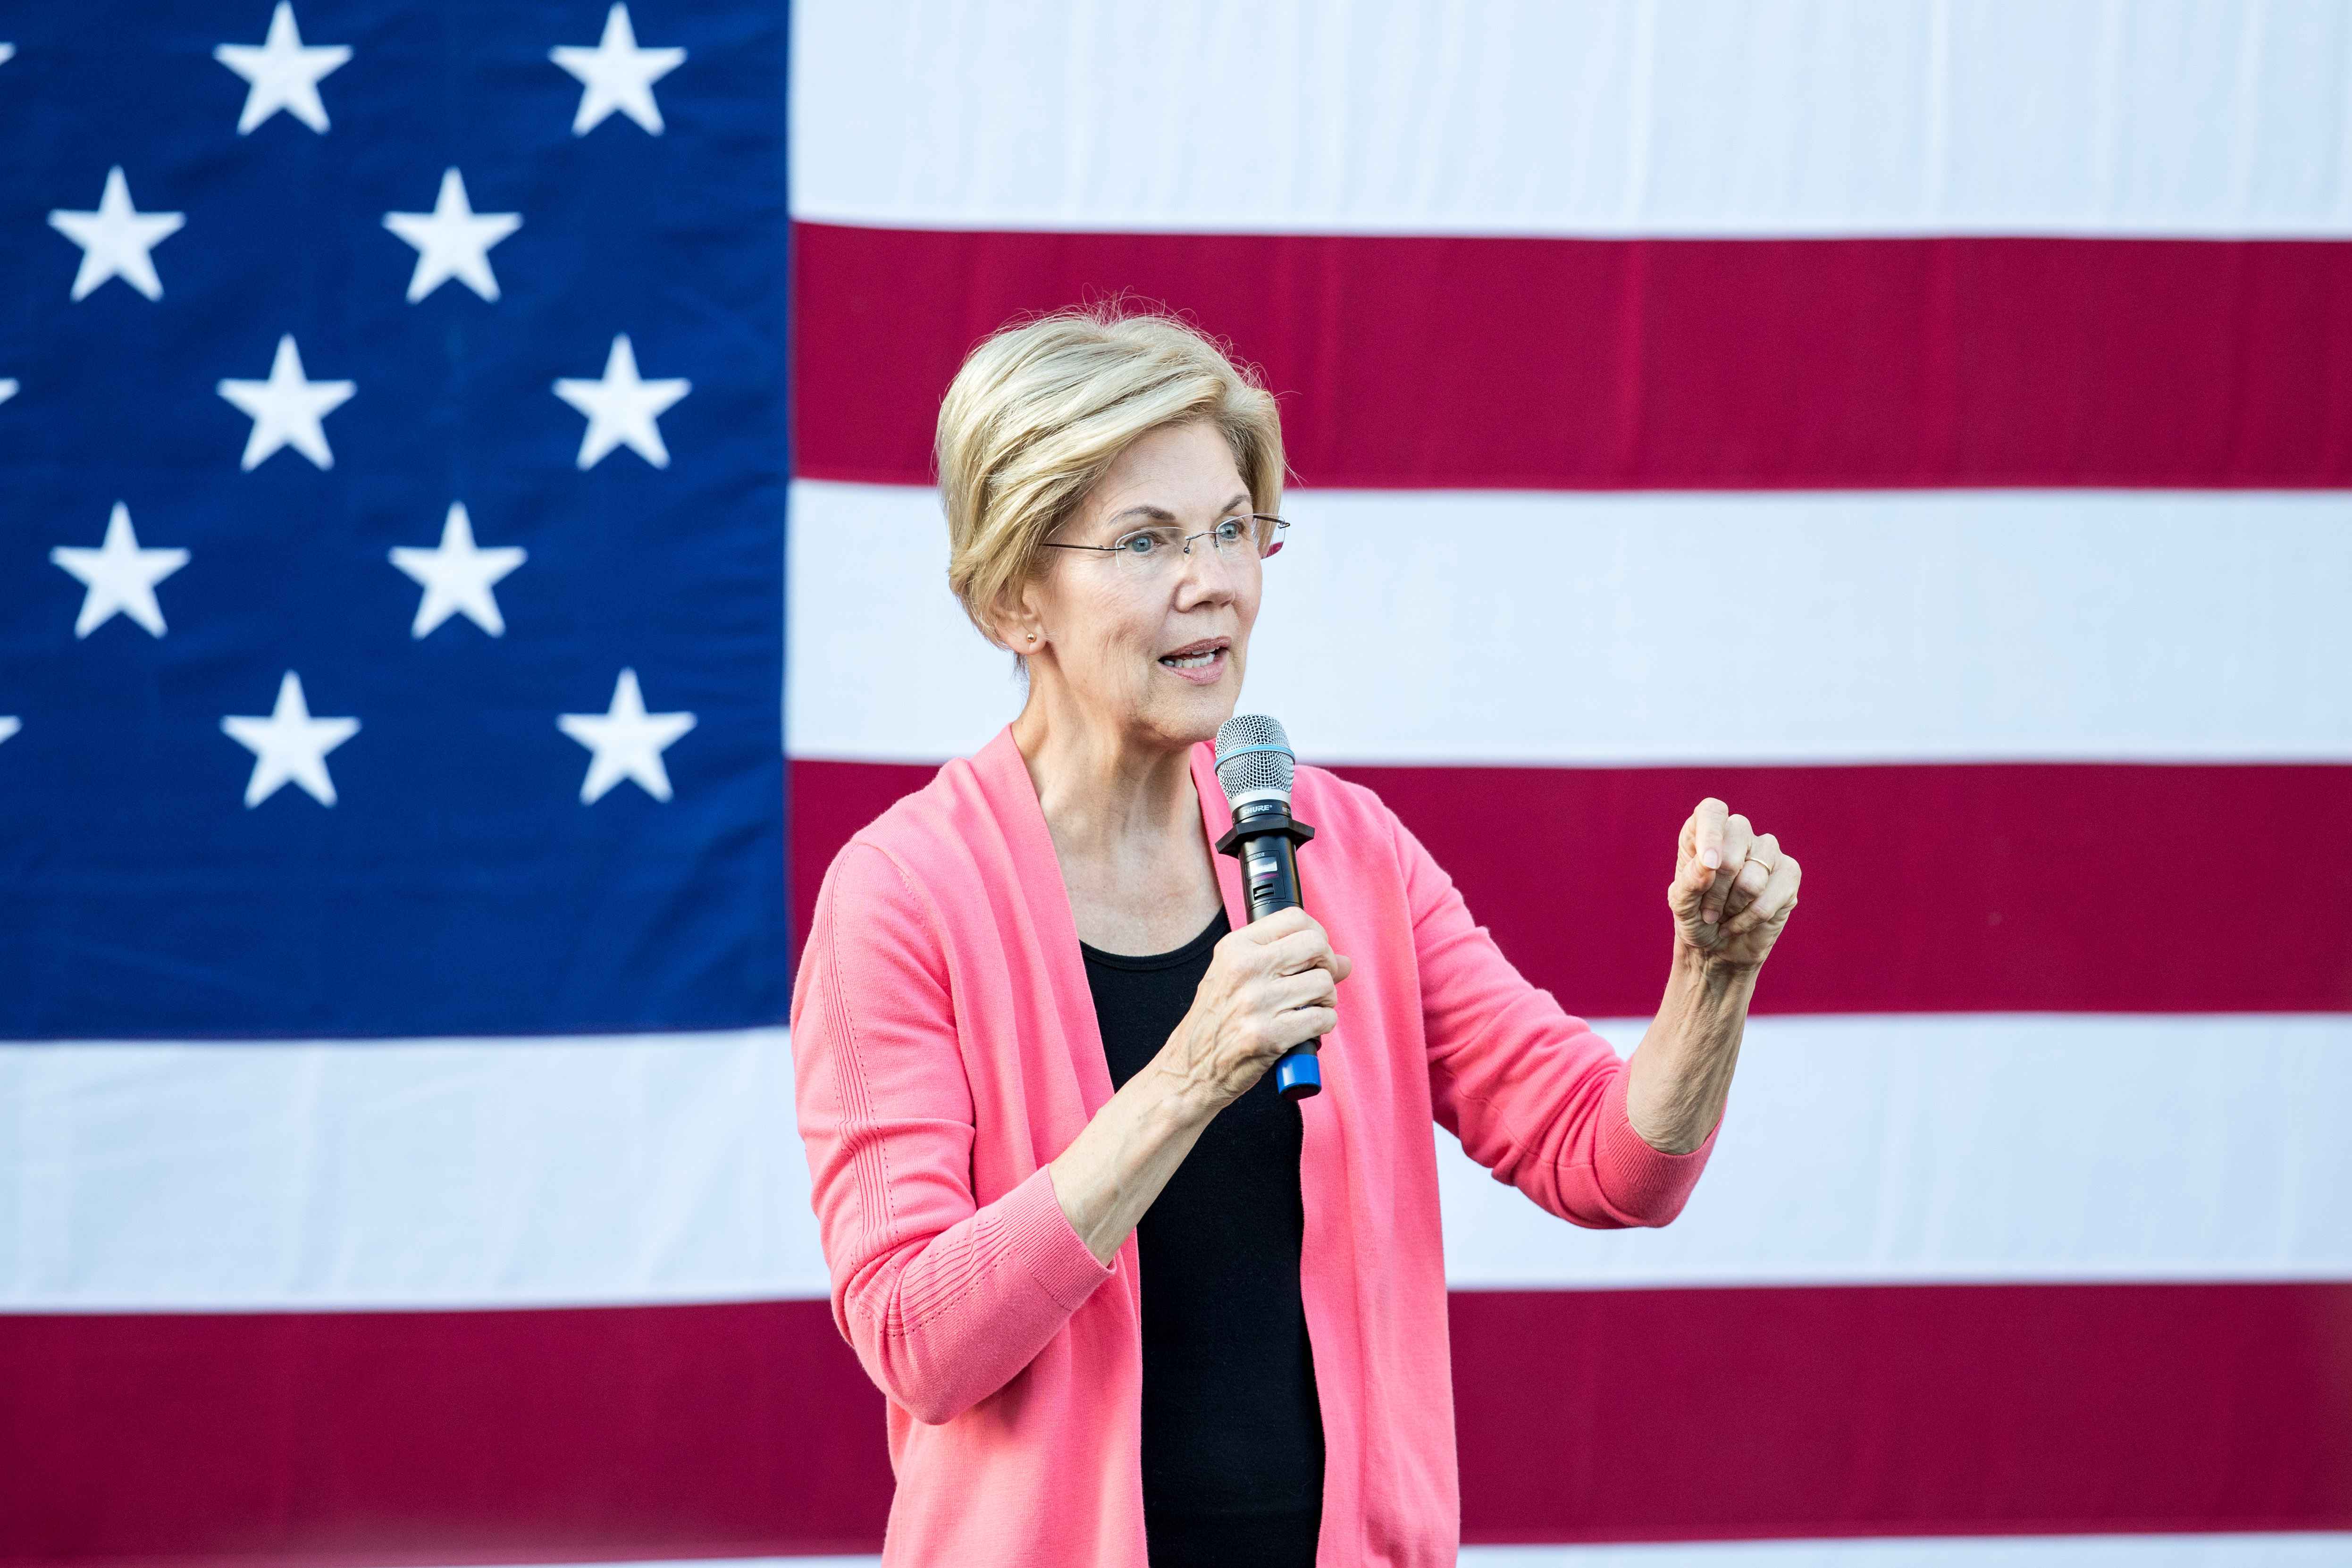 Elizabeth Warren says she lost her job when she got pregnant. Thousands of women every year say the same.